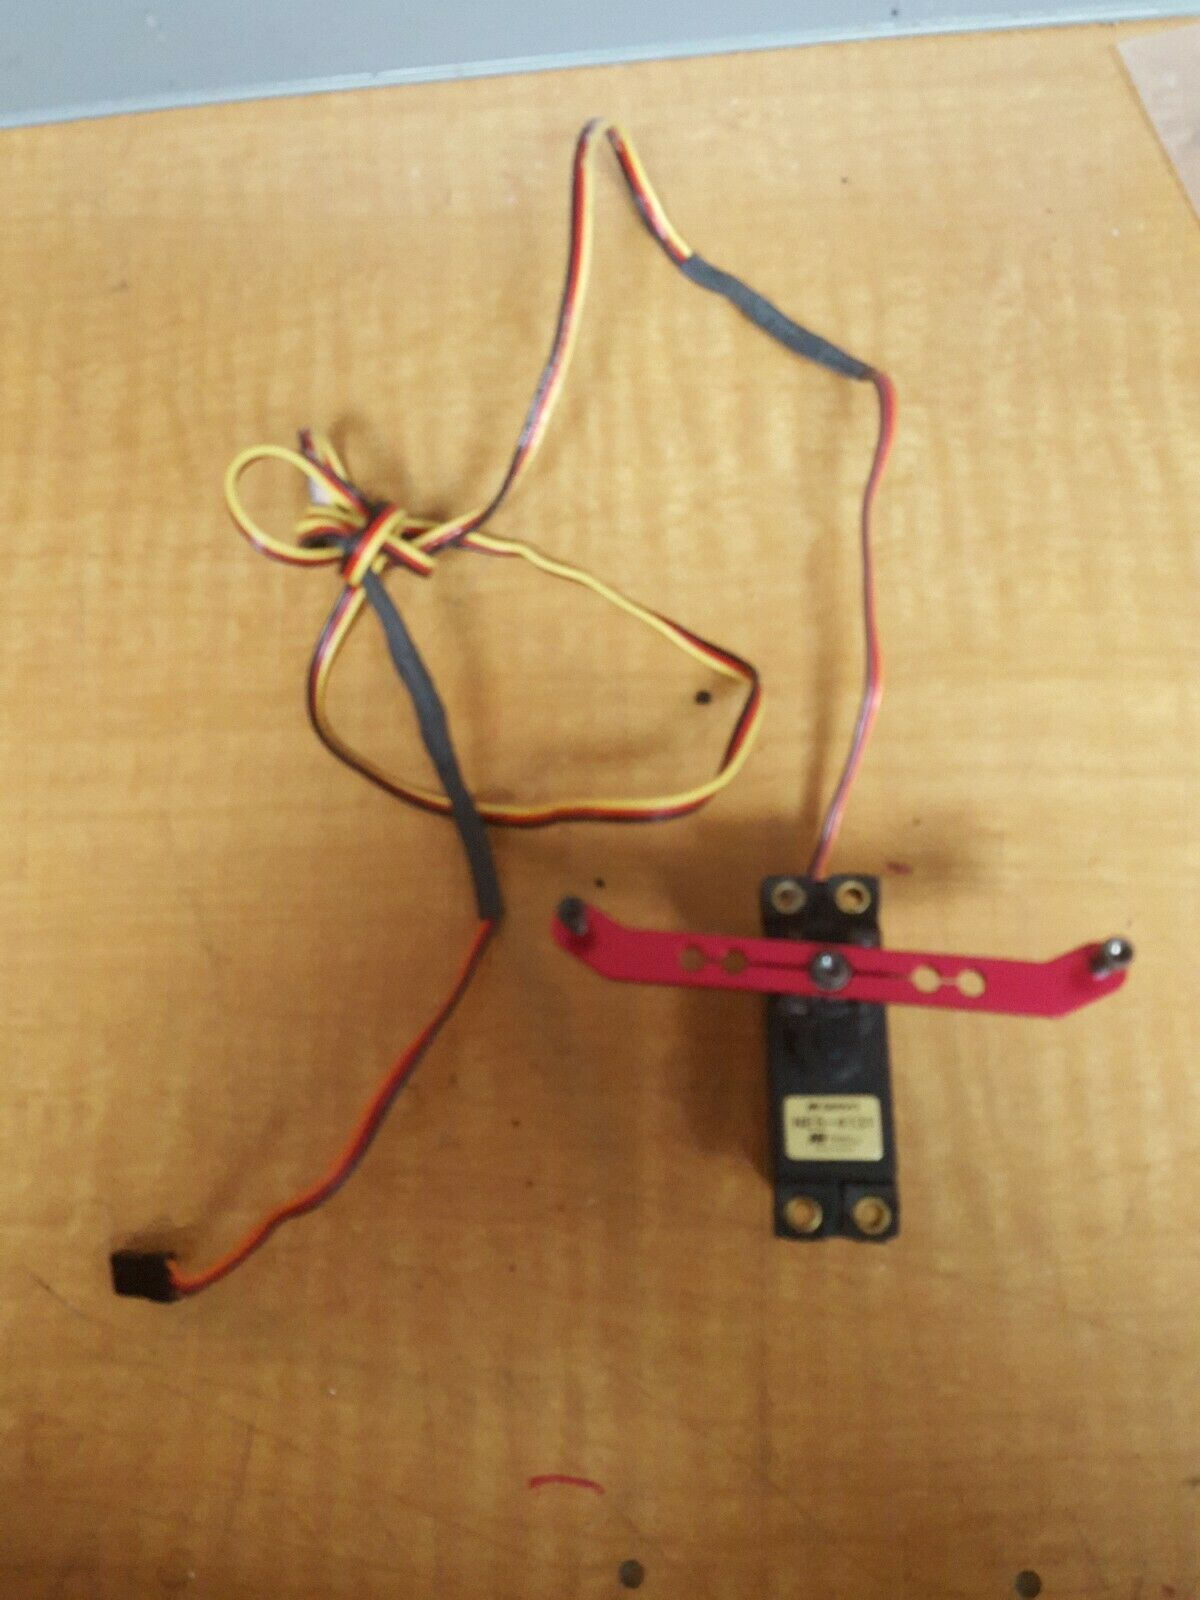 JR NES-4131 SERVO SERVO SERVO good used tested FREE SHIPPING pull pull arm aluminum japan b50321